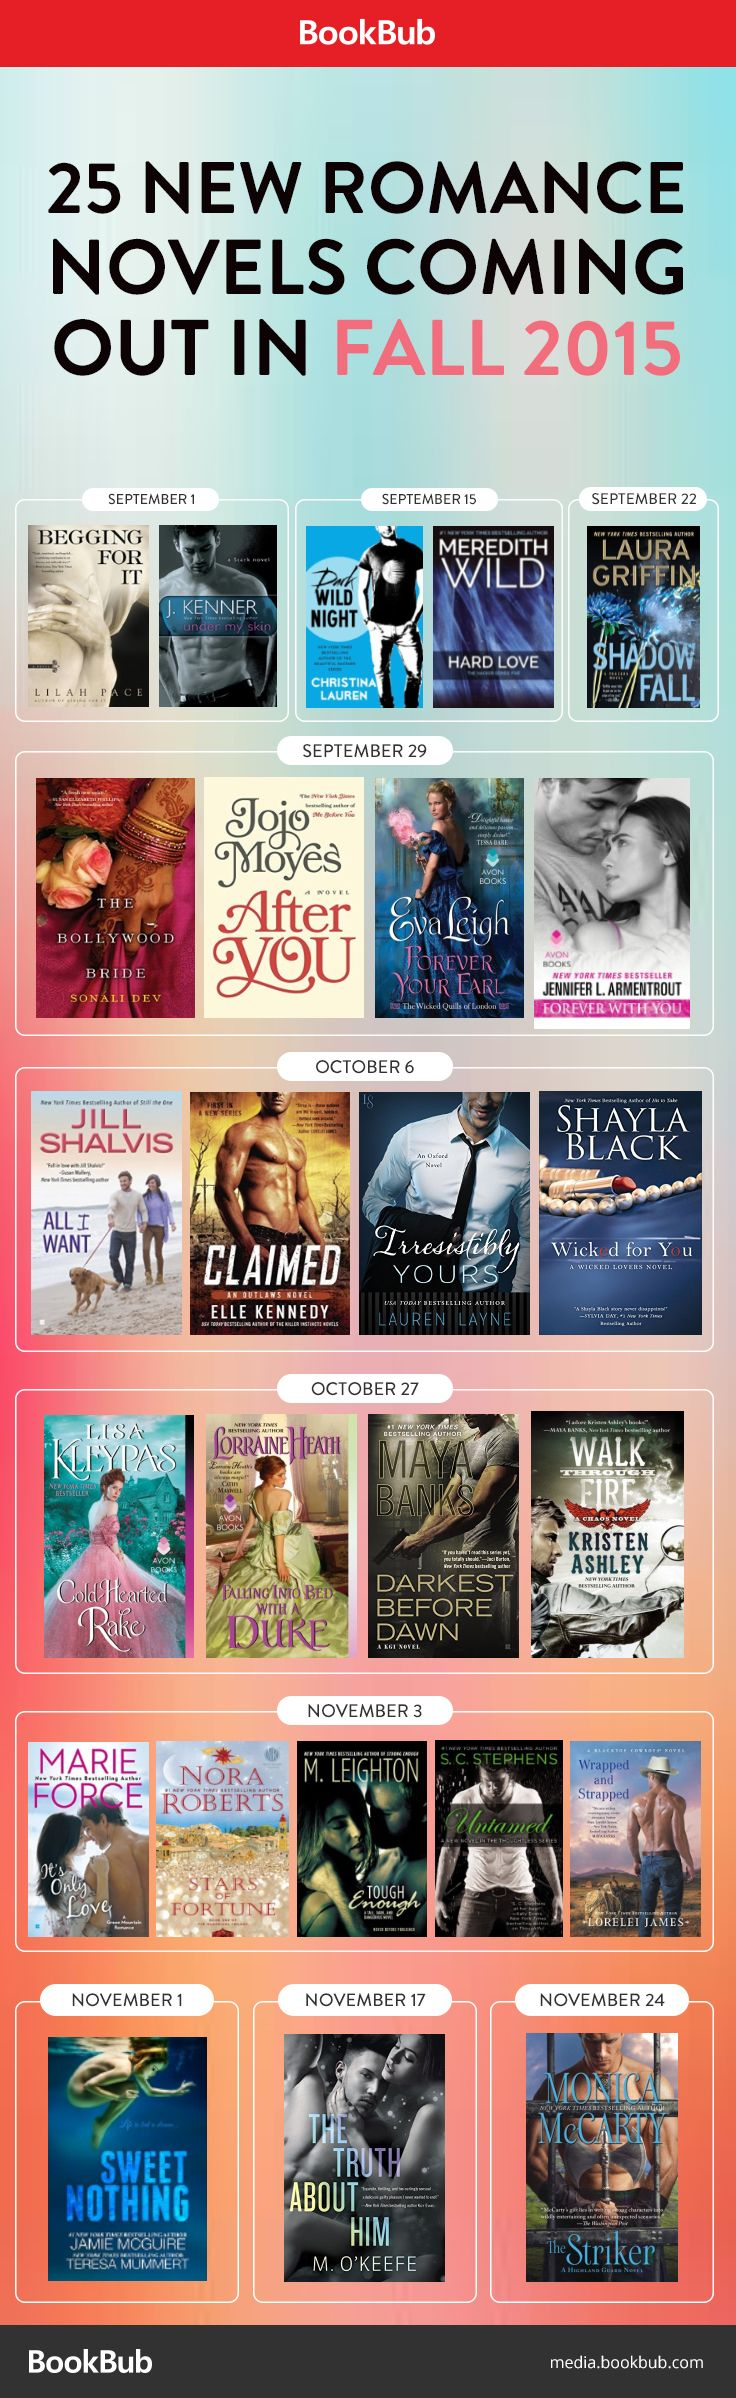 Infographic: These are the hottest new romance books coming out in fall 2015! Get excited for smoldering love stories with sexy heroes and heroines in these romances worth reading.